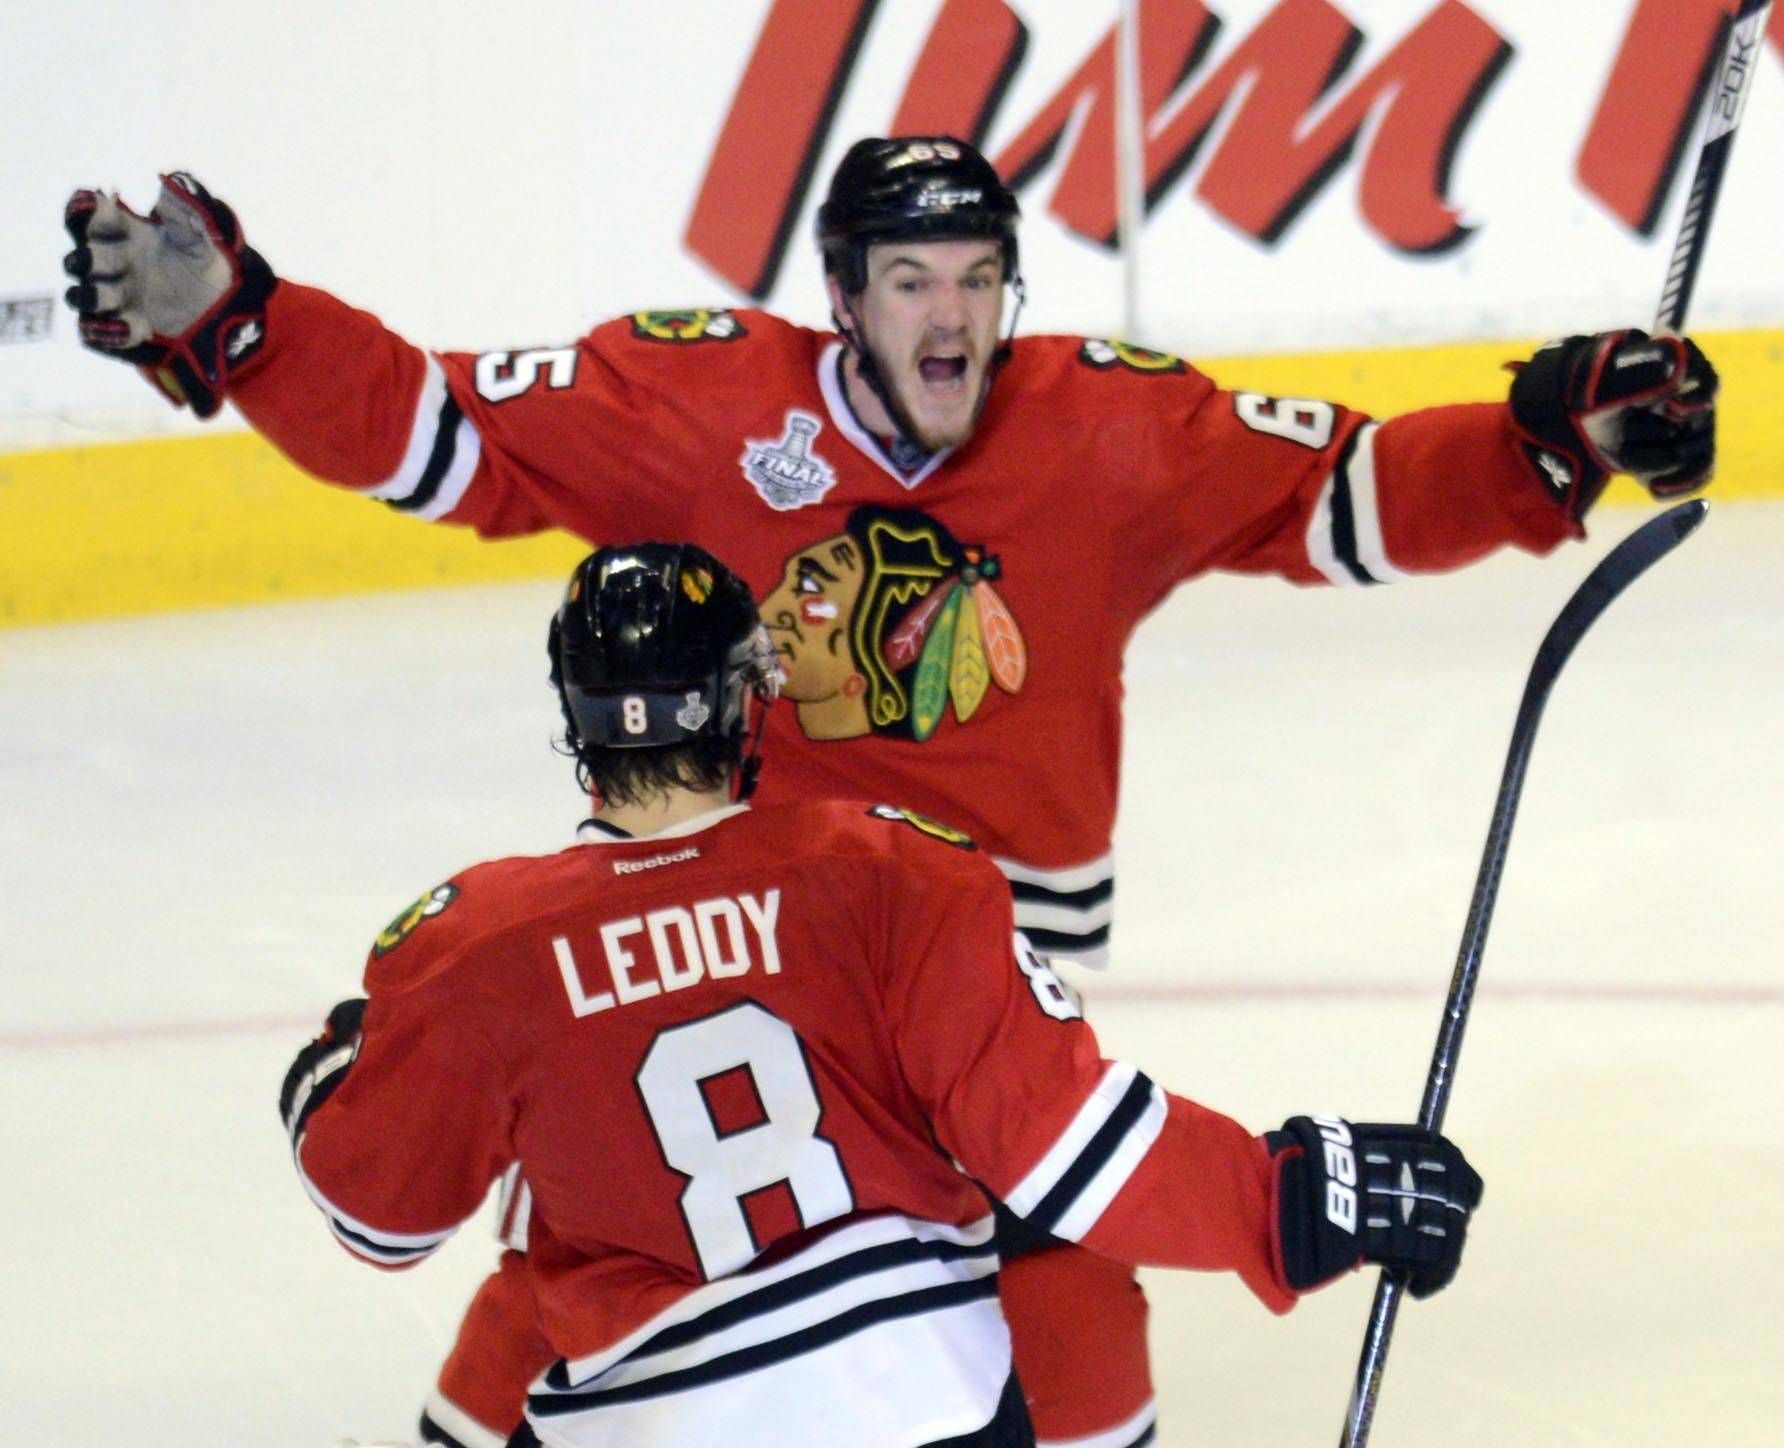 Chicago Blackhawks center Andrew Shaw reacts after scoring the game winning goal in the third overtime against the Boston Bruins during Game 1 of the Stanley Cup Finals Wednesday at the Untied Center in Chicago.